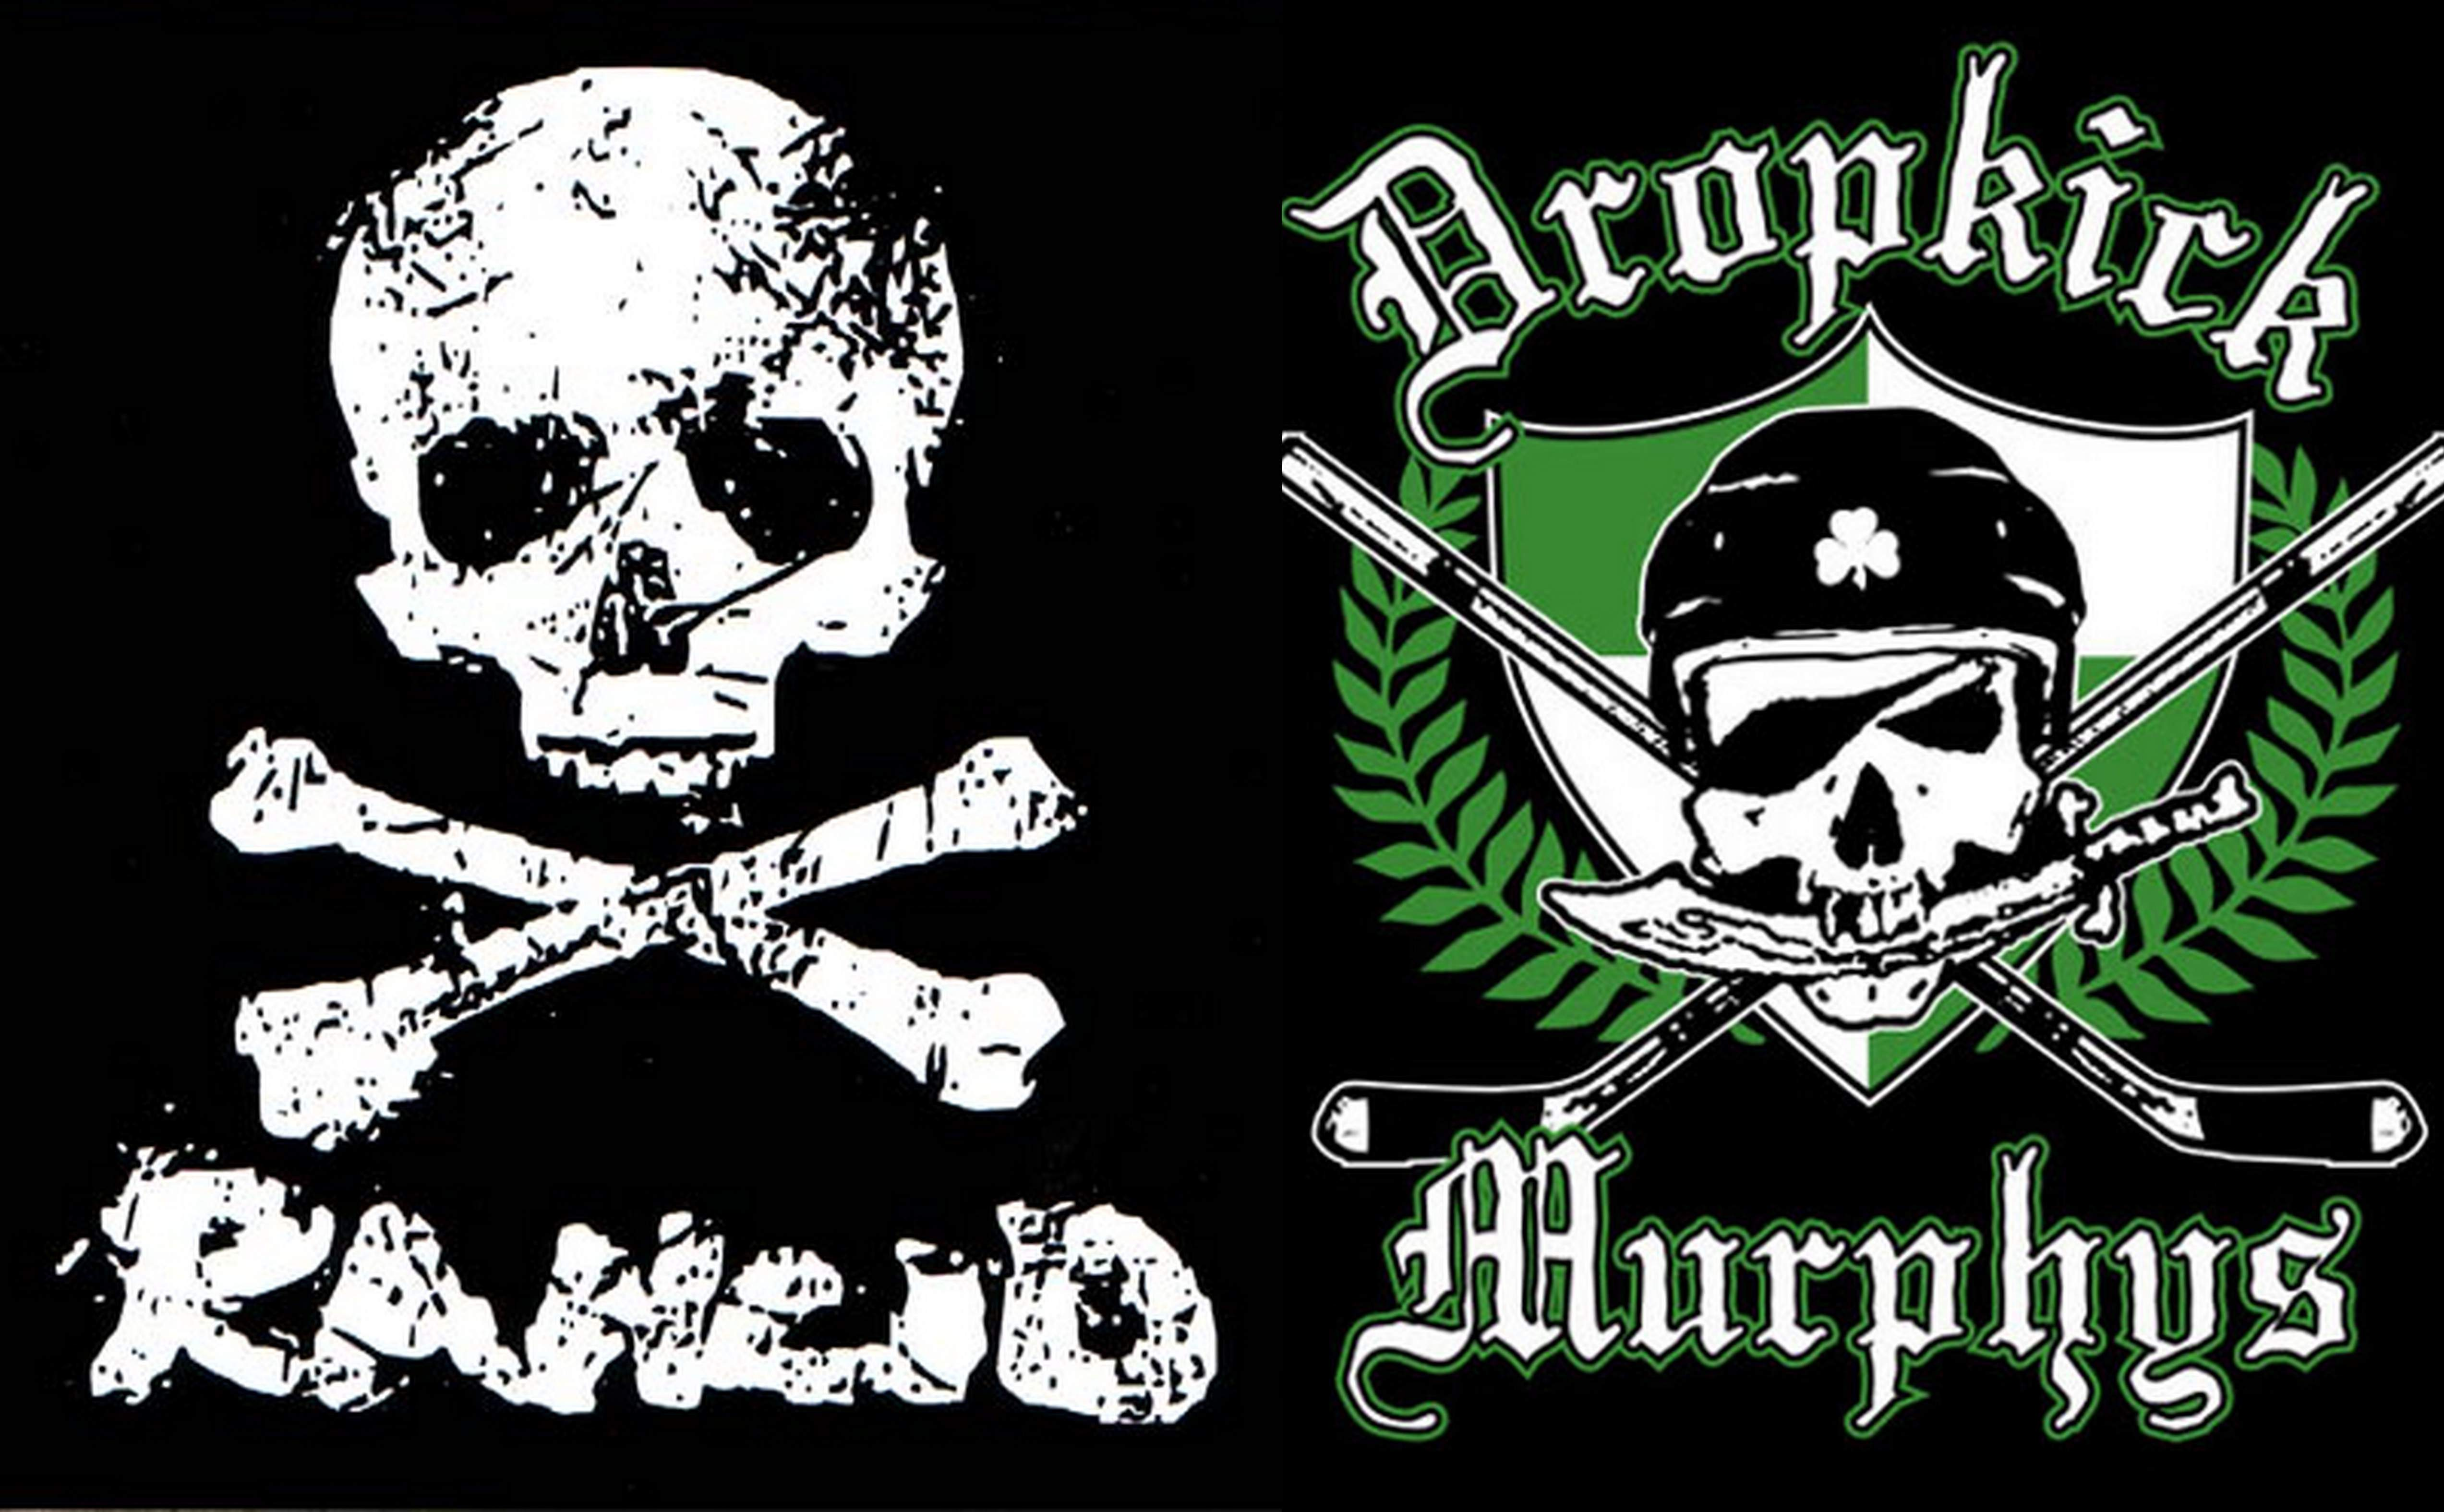 Rancid and Dropkick Murphys touring together this summer (Montreal on July XX)